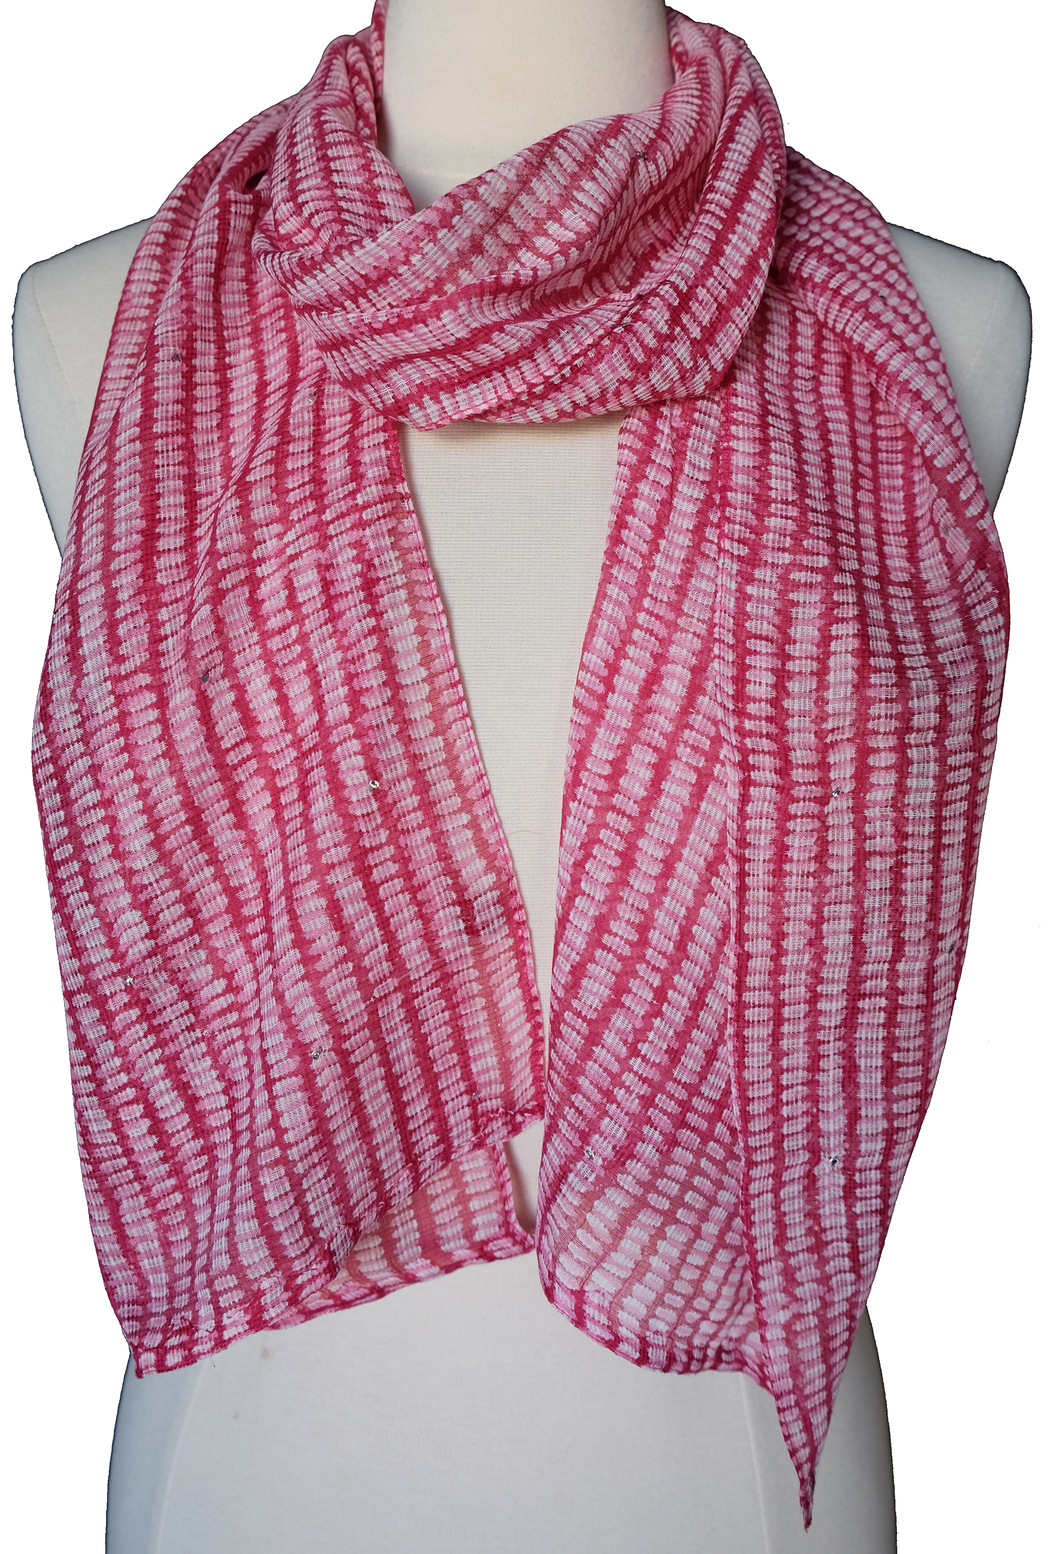 Hand Block Printed Anokhi Scarf - Dash Red - 12